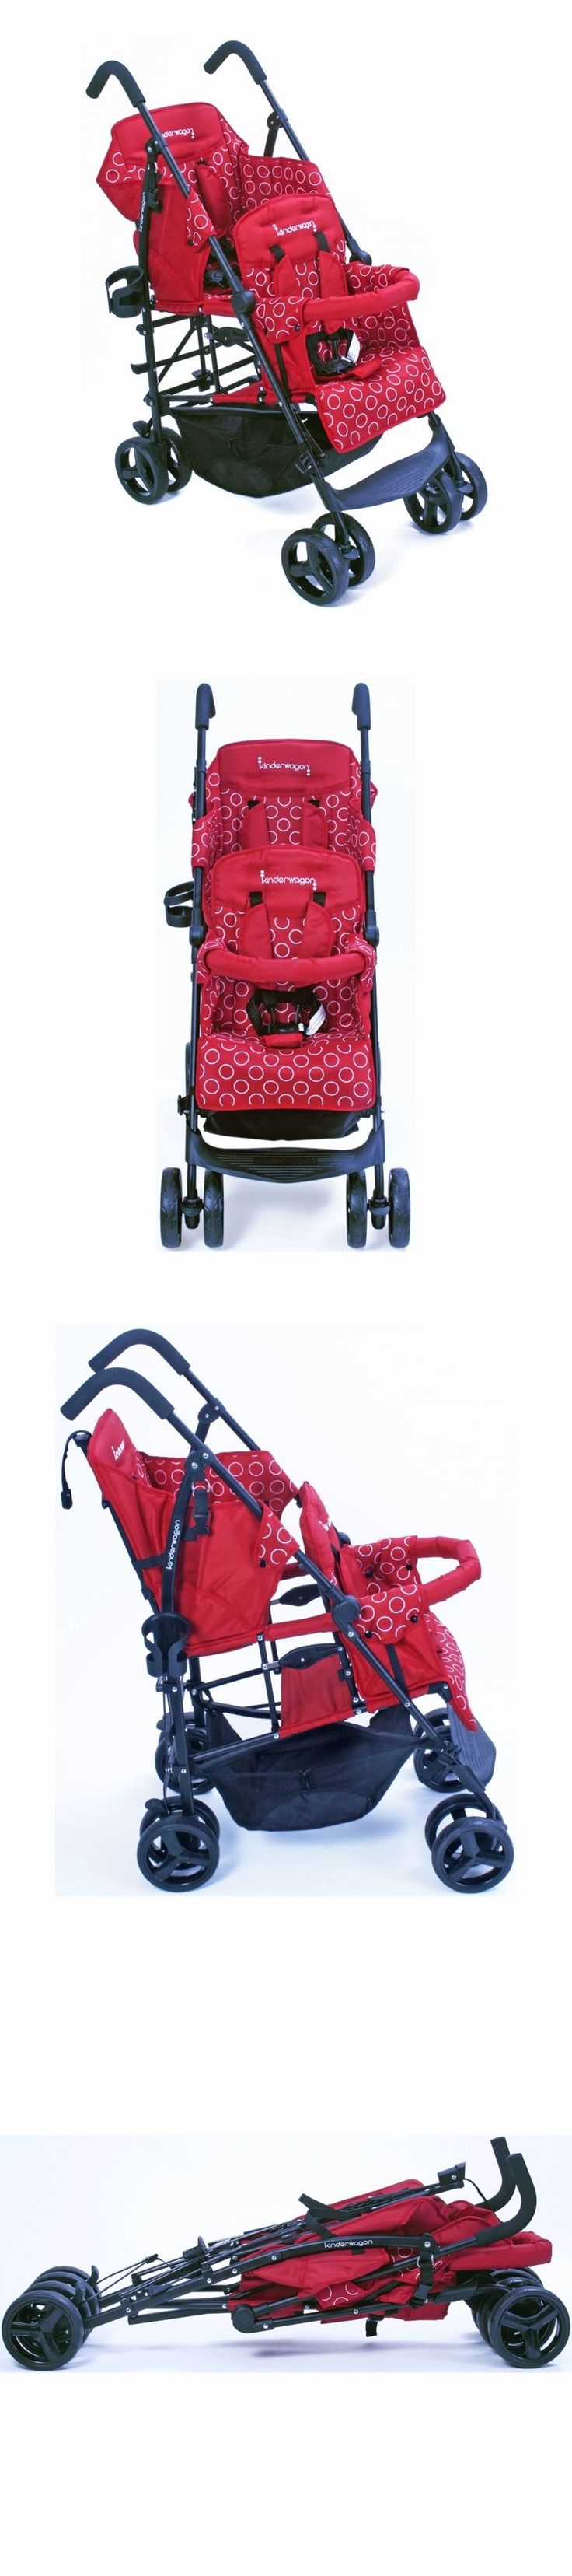 Other Baby Gear 100224: Kinderwagon Hop Tandem Double Umbrella Stroller In Red Brand New!! Open Box!!! -> BUY IT NOW ONLY: $259 on eBay!